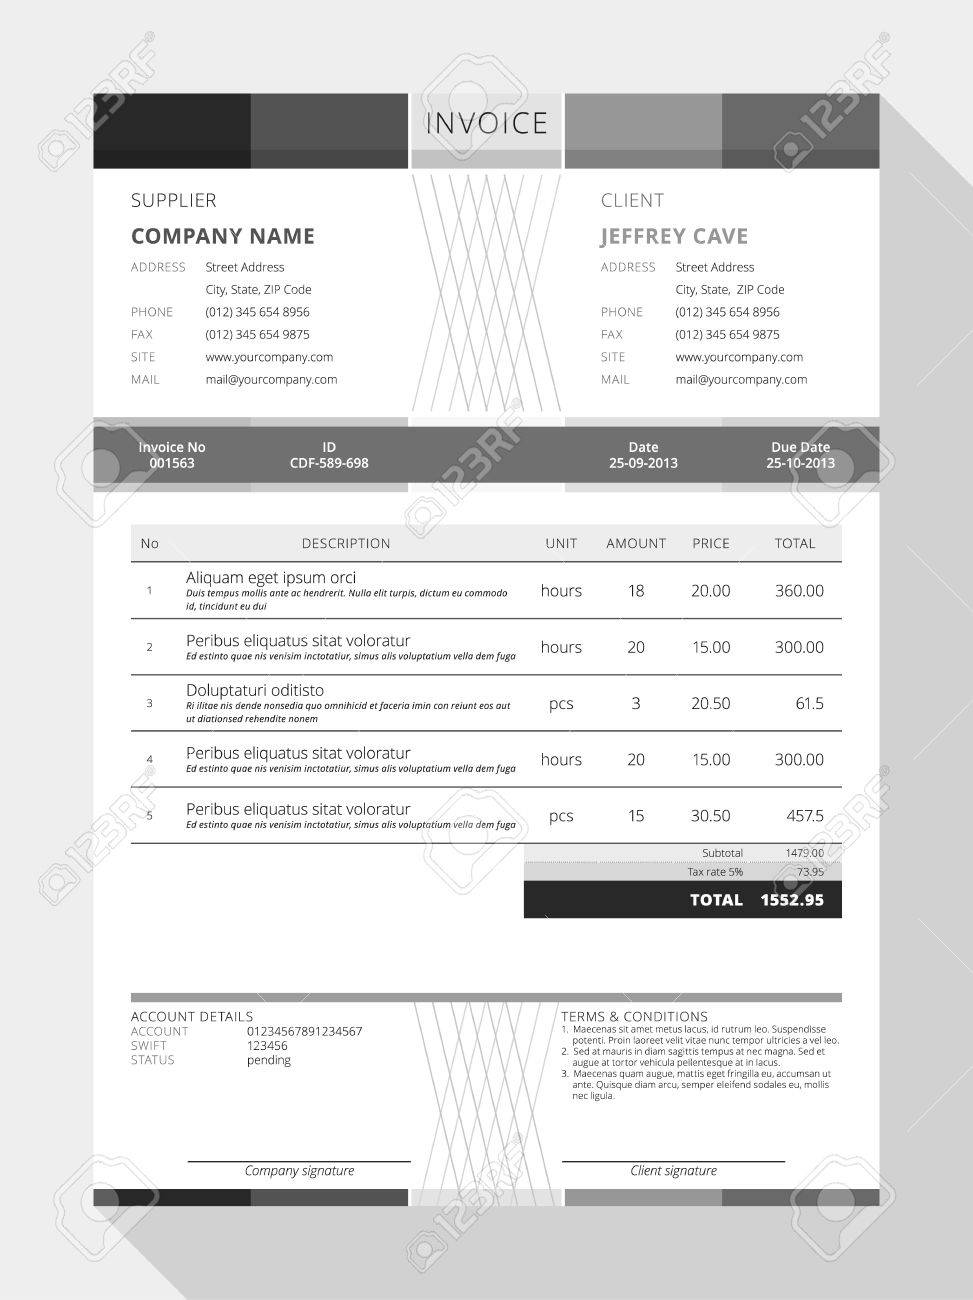 Aaaaeroincus  Sweet Design An Invoice  Professional Graphic Design Invoice  With Engaging Vector Customizable Invoice Form Template Design Vector   Design An Invoice With Alluring Salvation Army Donation Form Receipt Also Where Is The Tracking Number On My Usps Receipt In Addition Google Read Receipt And Print Fake Receipts As Well As Delta Baggage Fee Receipt Additionally Receipt For Chicken Breast From Happytomco With Aaaaeroincus  Engaging Design An Invoice  Professional Graphic Design Invoice  With Alluring Vector Customizable Invoice Form Template Design Vector   Design An Invoice And Sweet Salvation Army Donation Form Receipt Also Where Is The Tracking Number On My Usps Receipt In Addition Google Read Receipt From Happytomco